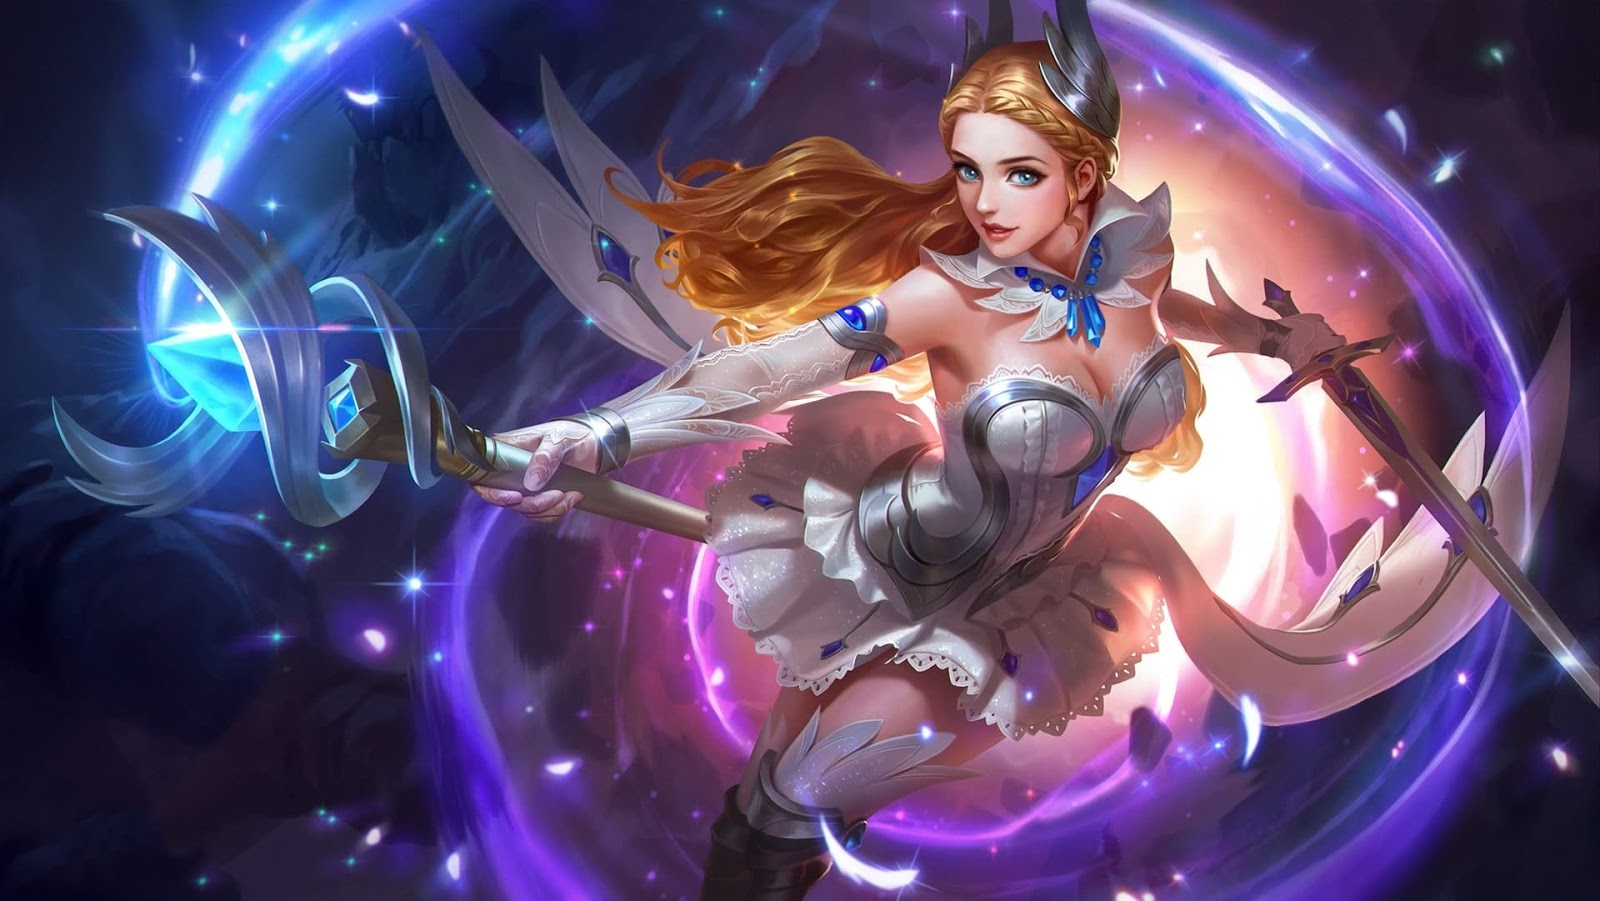 Wallpaper Odette Swan Princess Skin Mobile Legends HD for PC